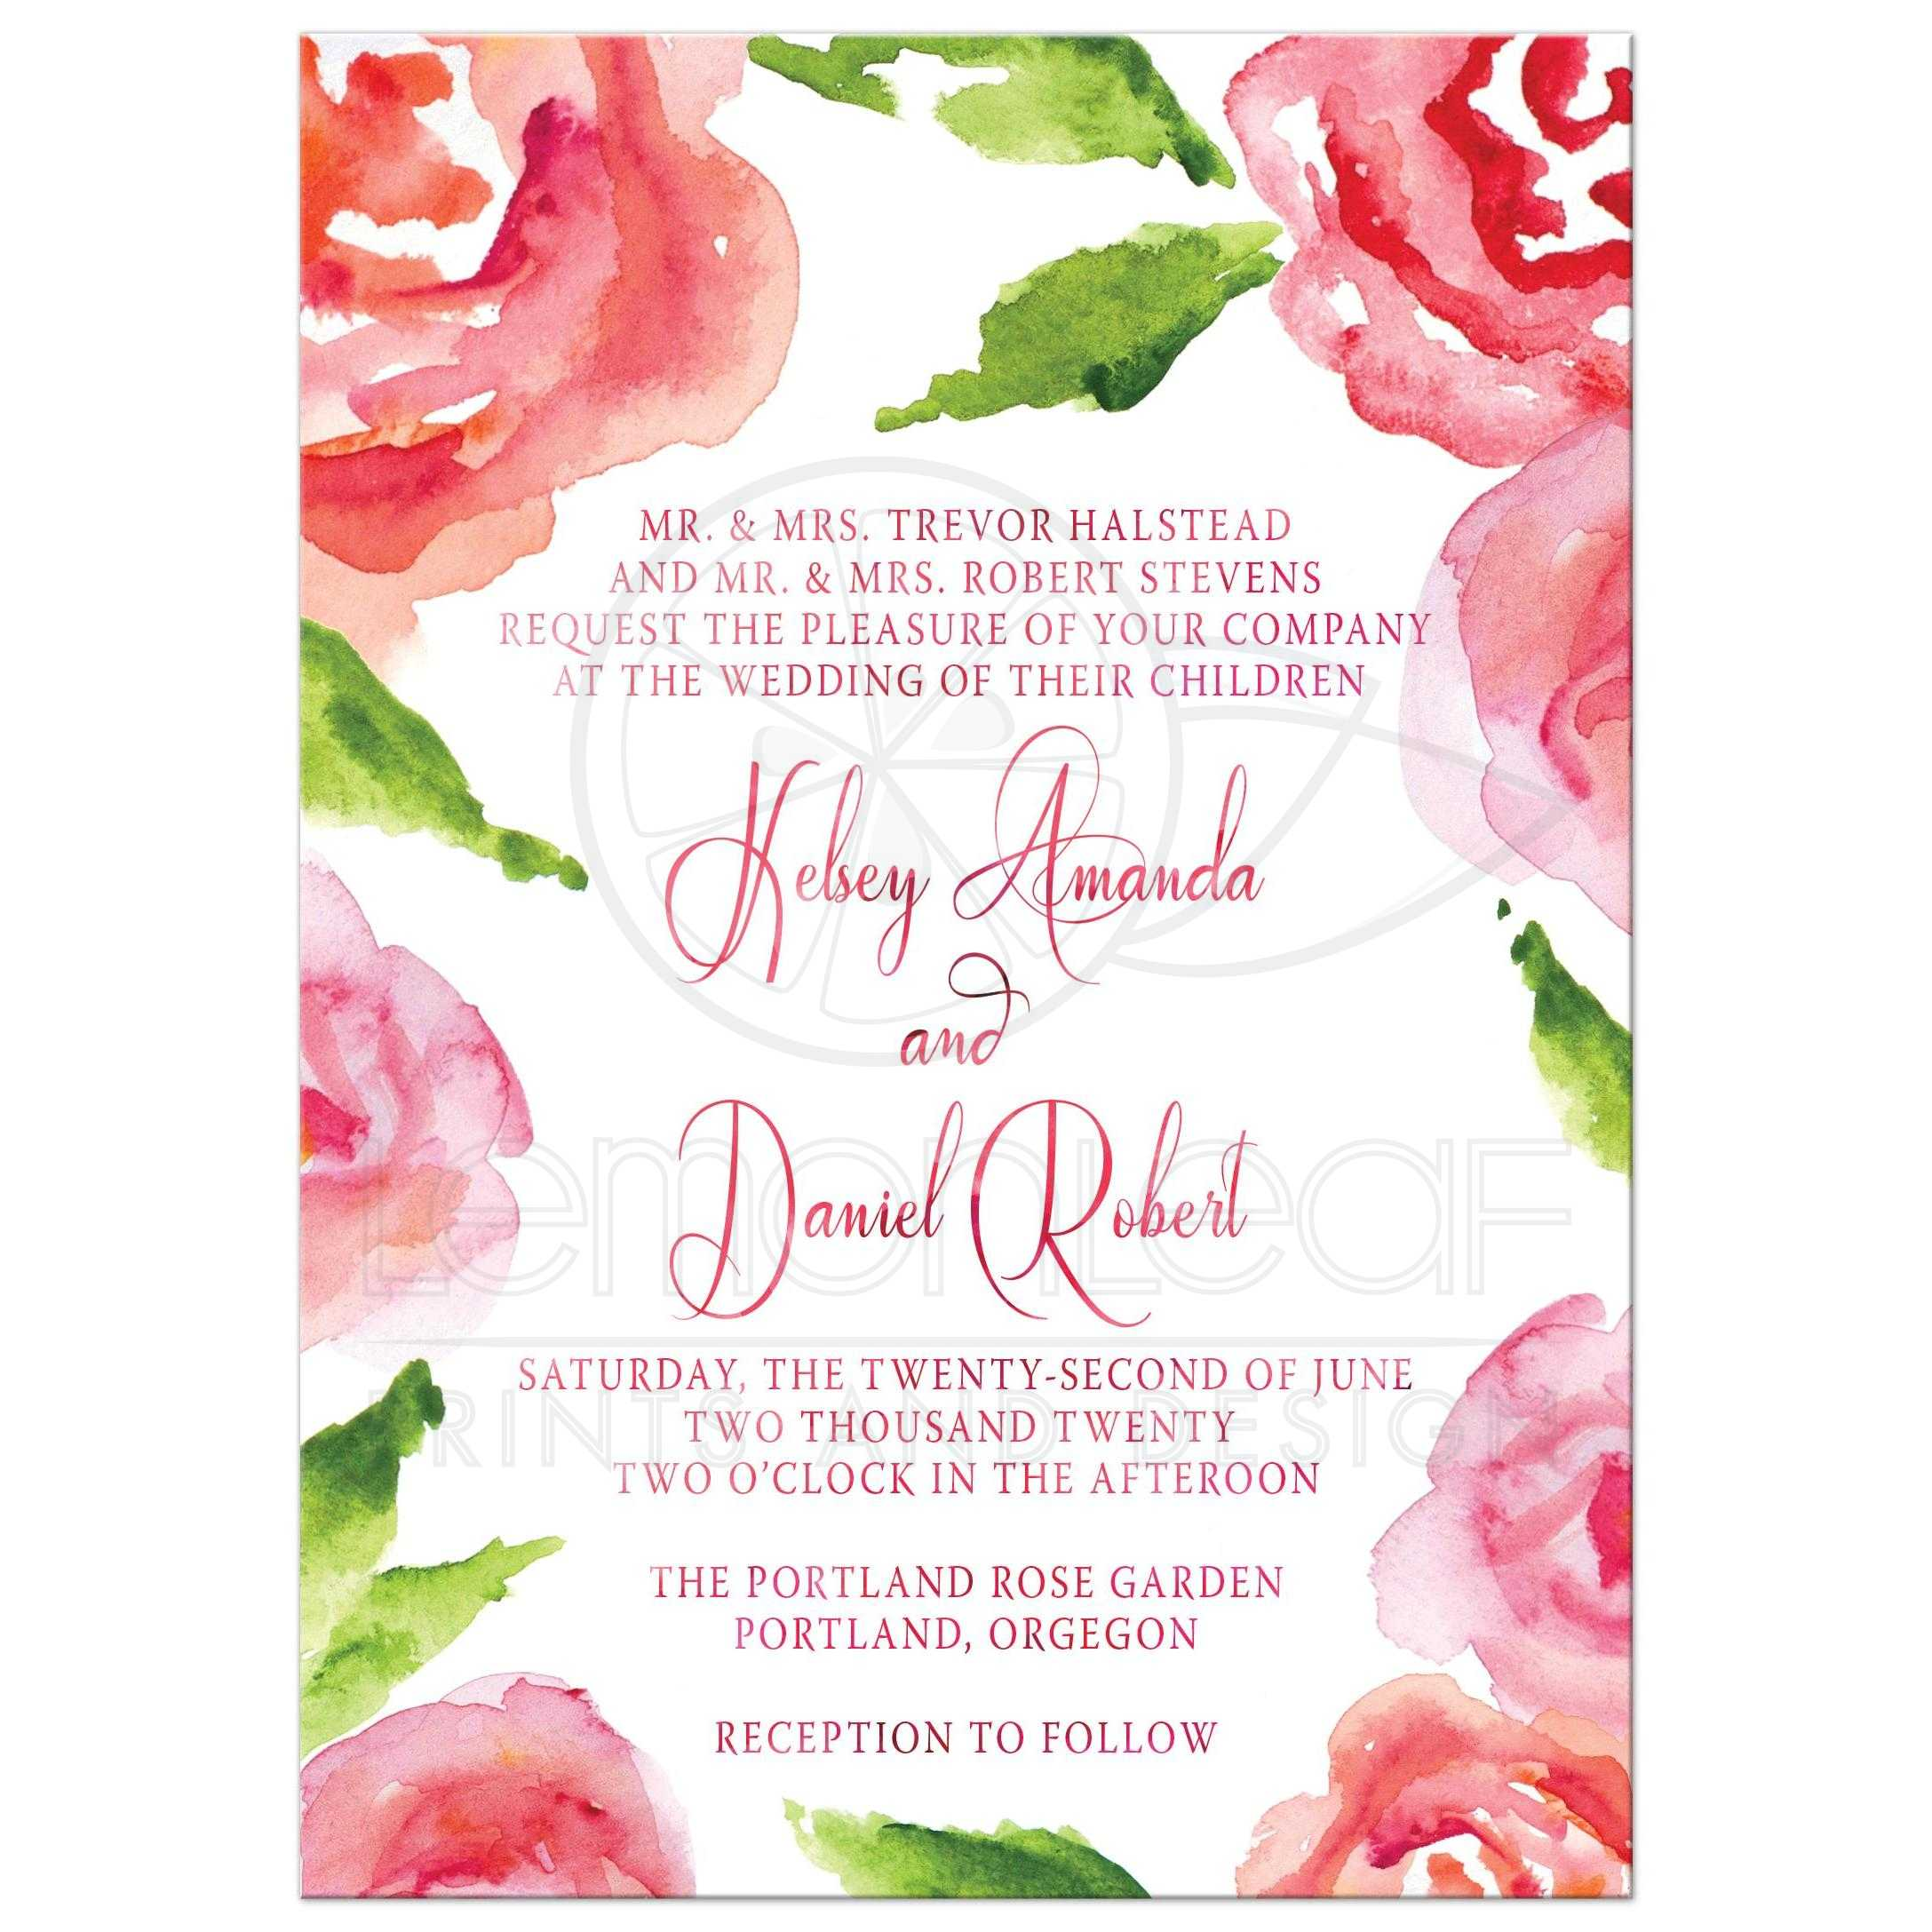 wedding invitations watercolor rose garden